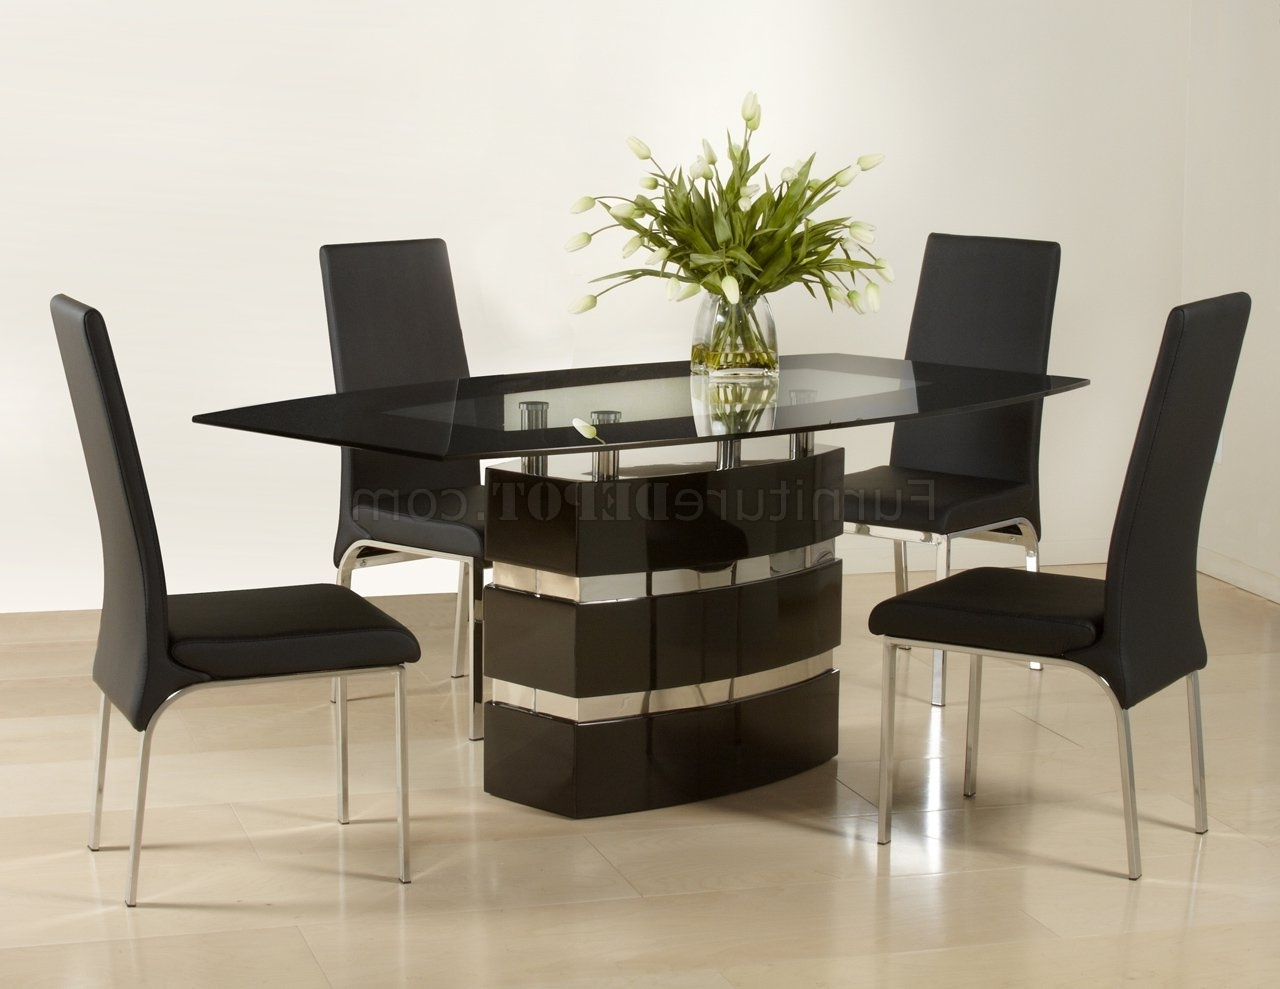 Most Up To Date Black High Gloss Finish Modern Dining Table W/optional Chairs For Black High Gloss Dining Chairs (View 17 of 25)